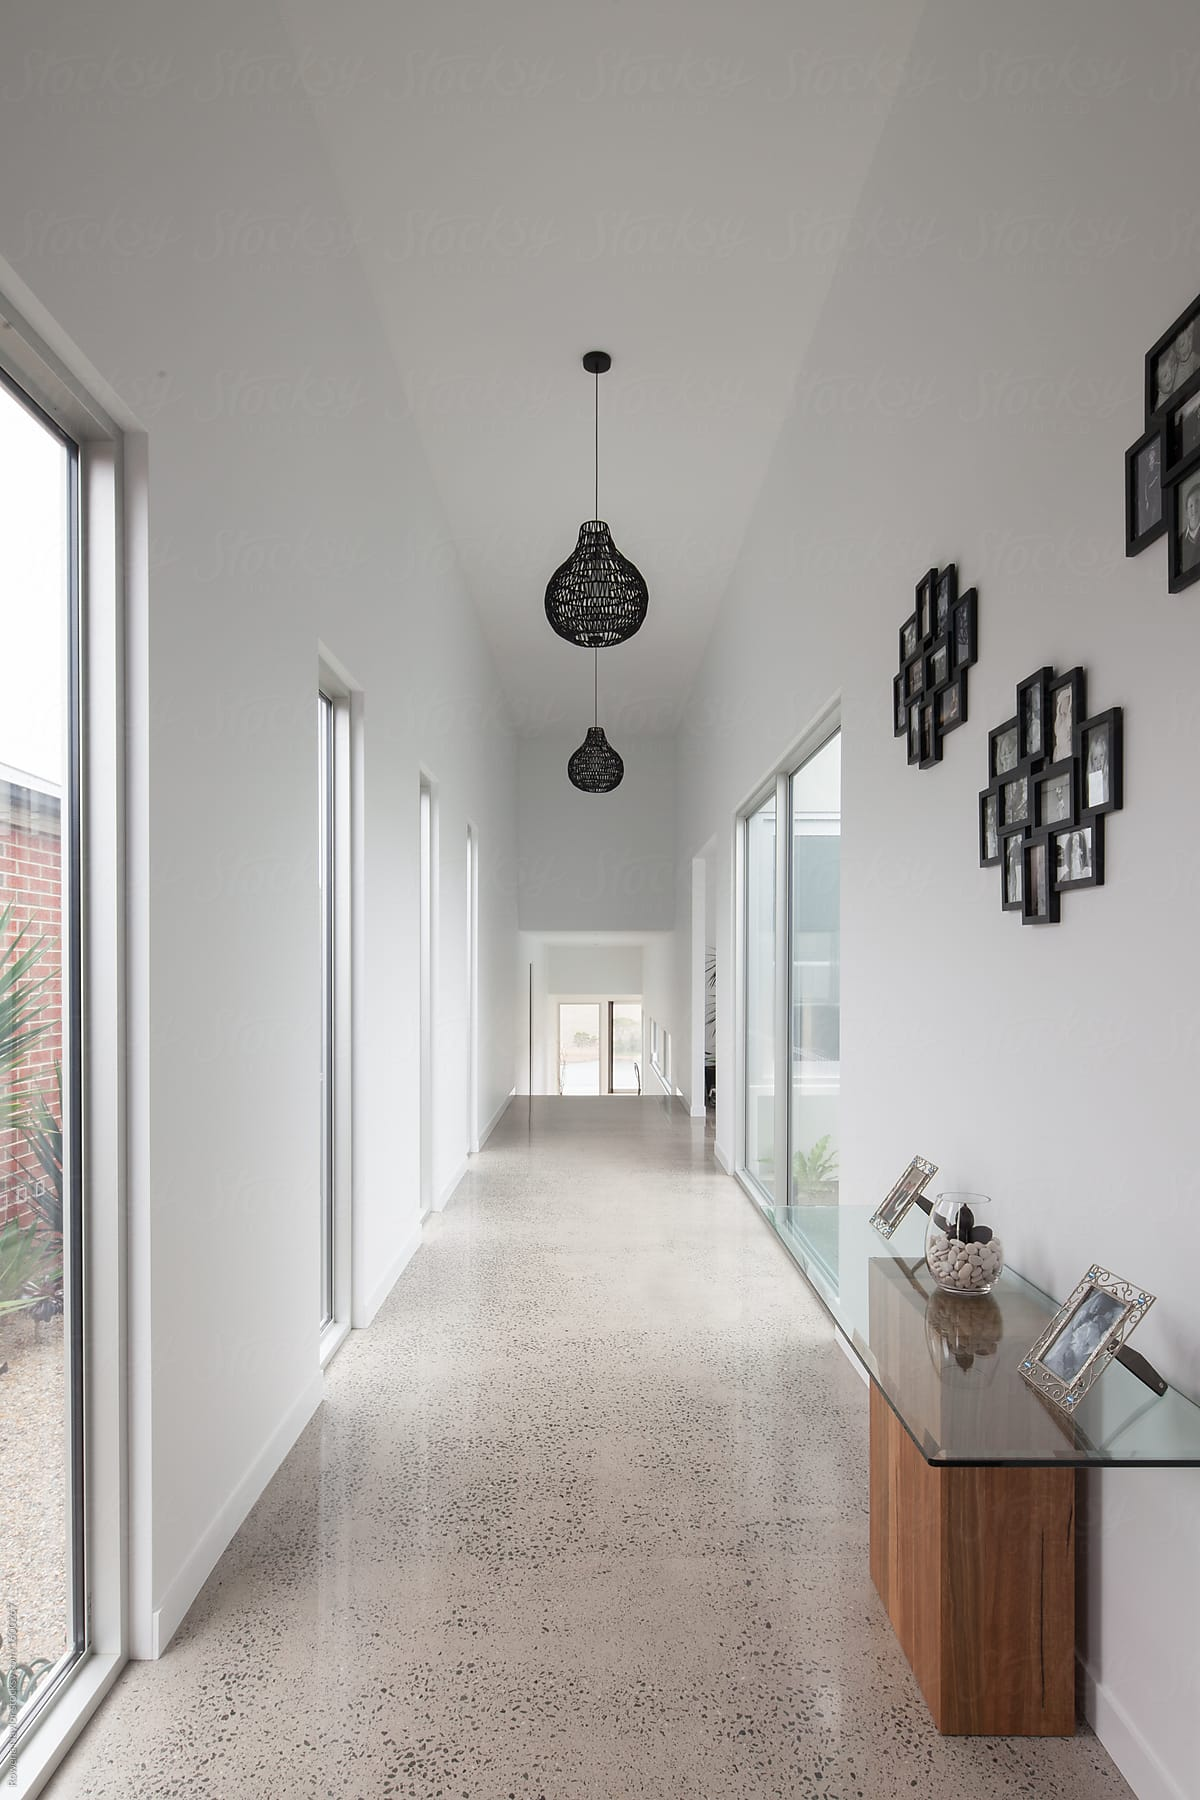 Wide Hallway In Contemporary Home With Polished Concrete Flooring By Rowena  Naylor For Stocksy United